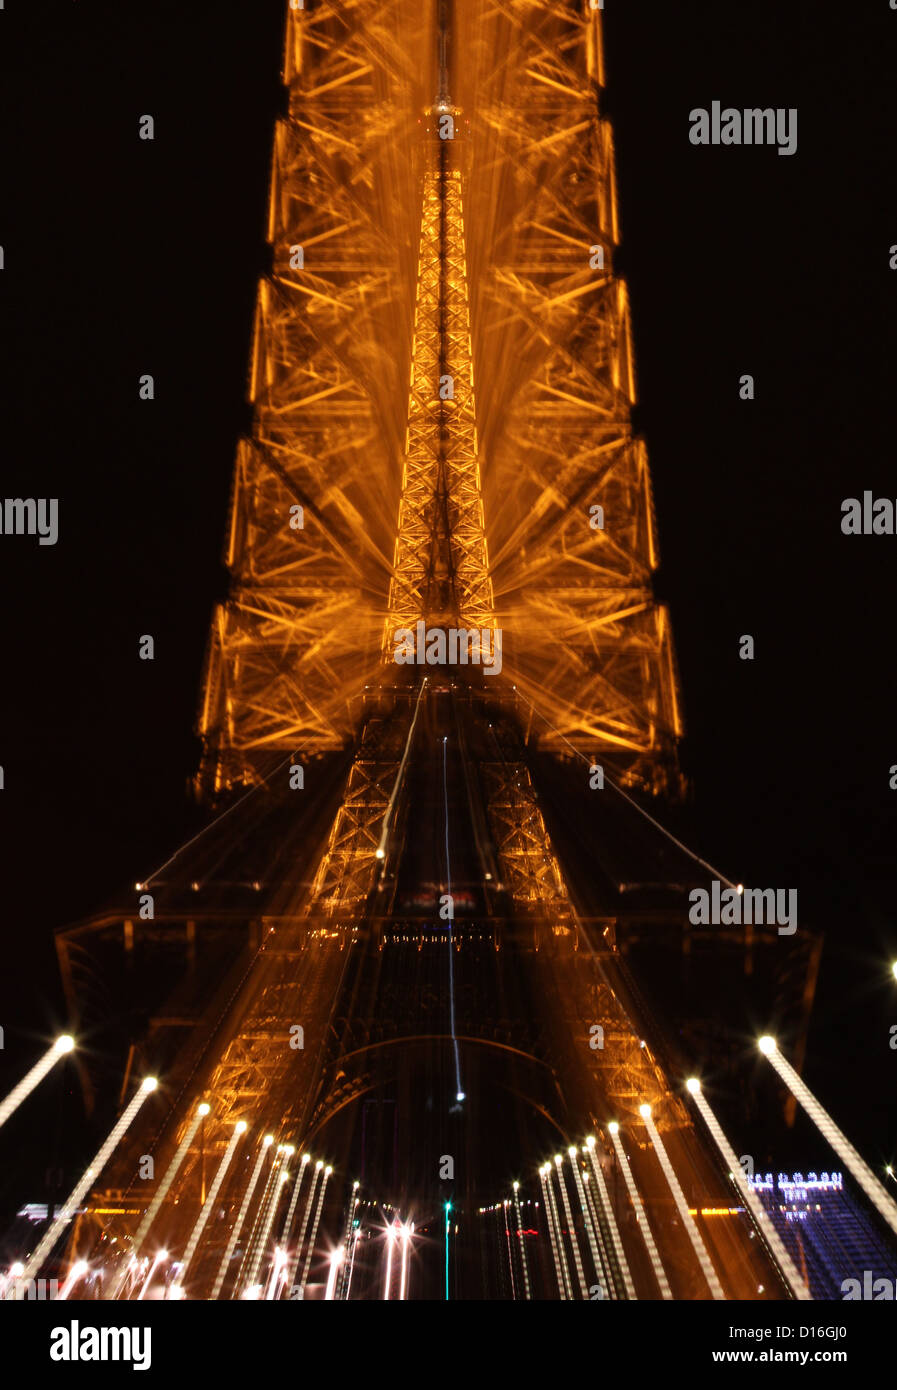 Exceptionally unique luminous Eiffel Tower at night, radiating light into the sky in a spectacular hallucinatory - Stock Image